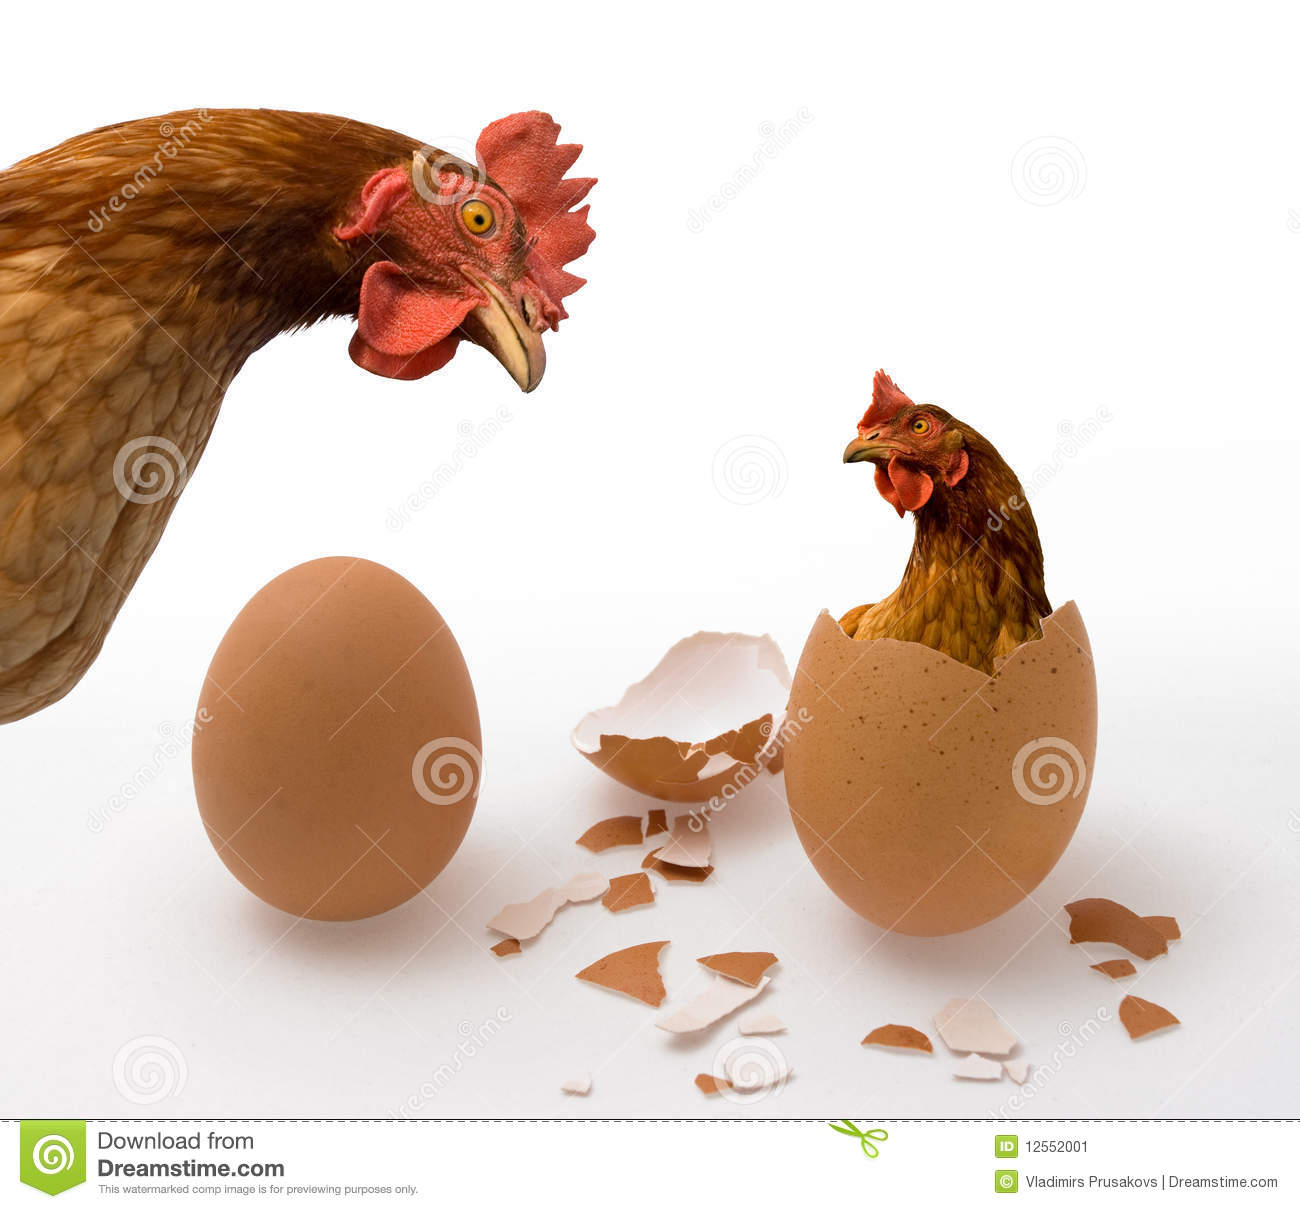 Chicken or Egg on White, Philosophy Question, Who Was the First